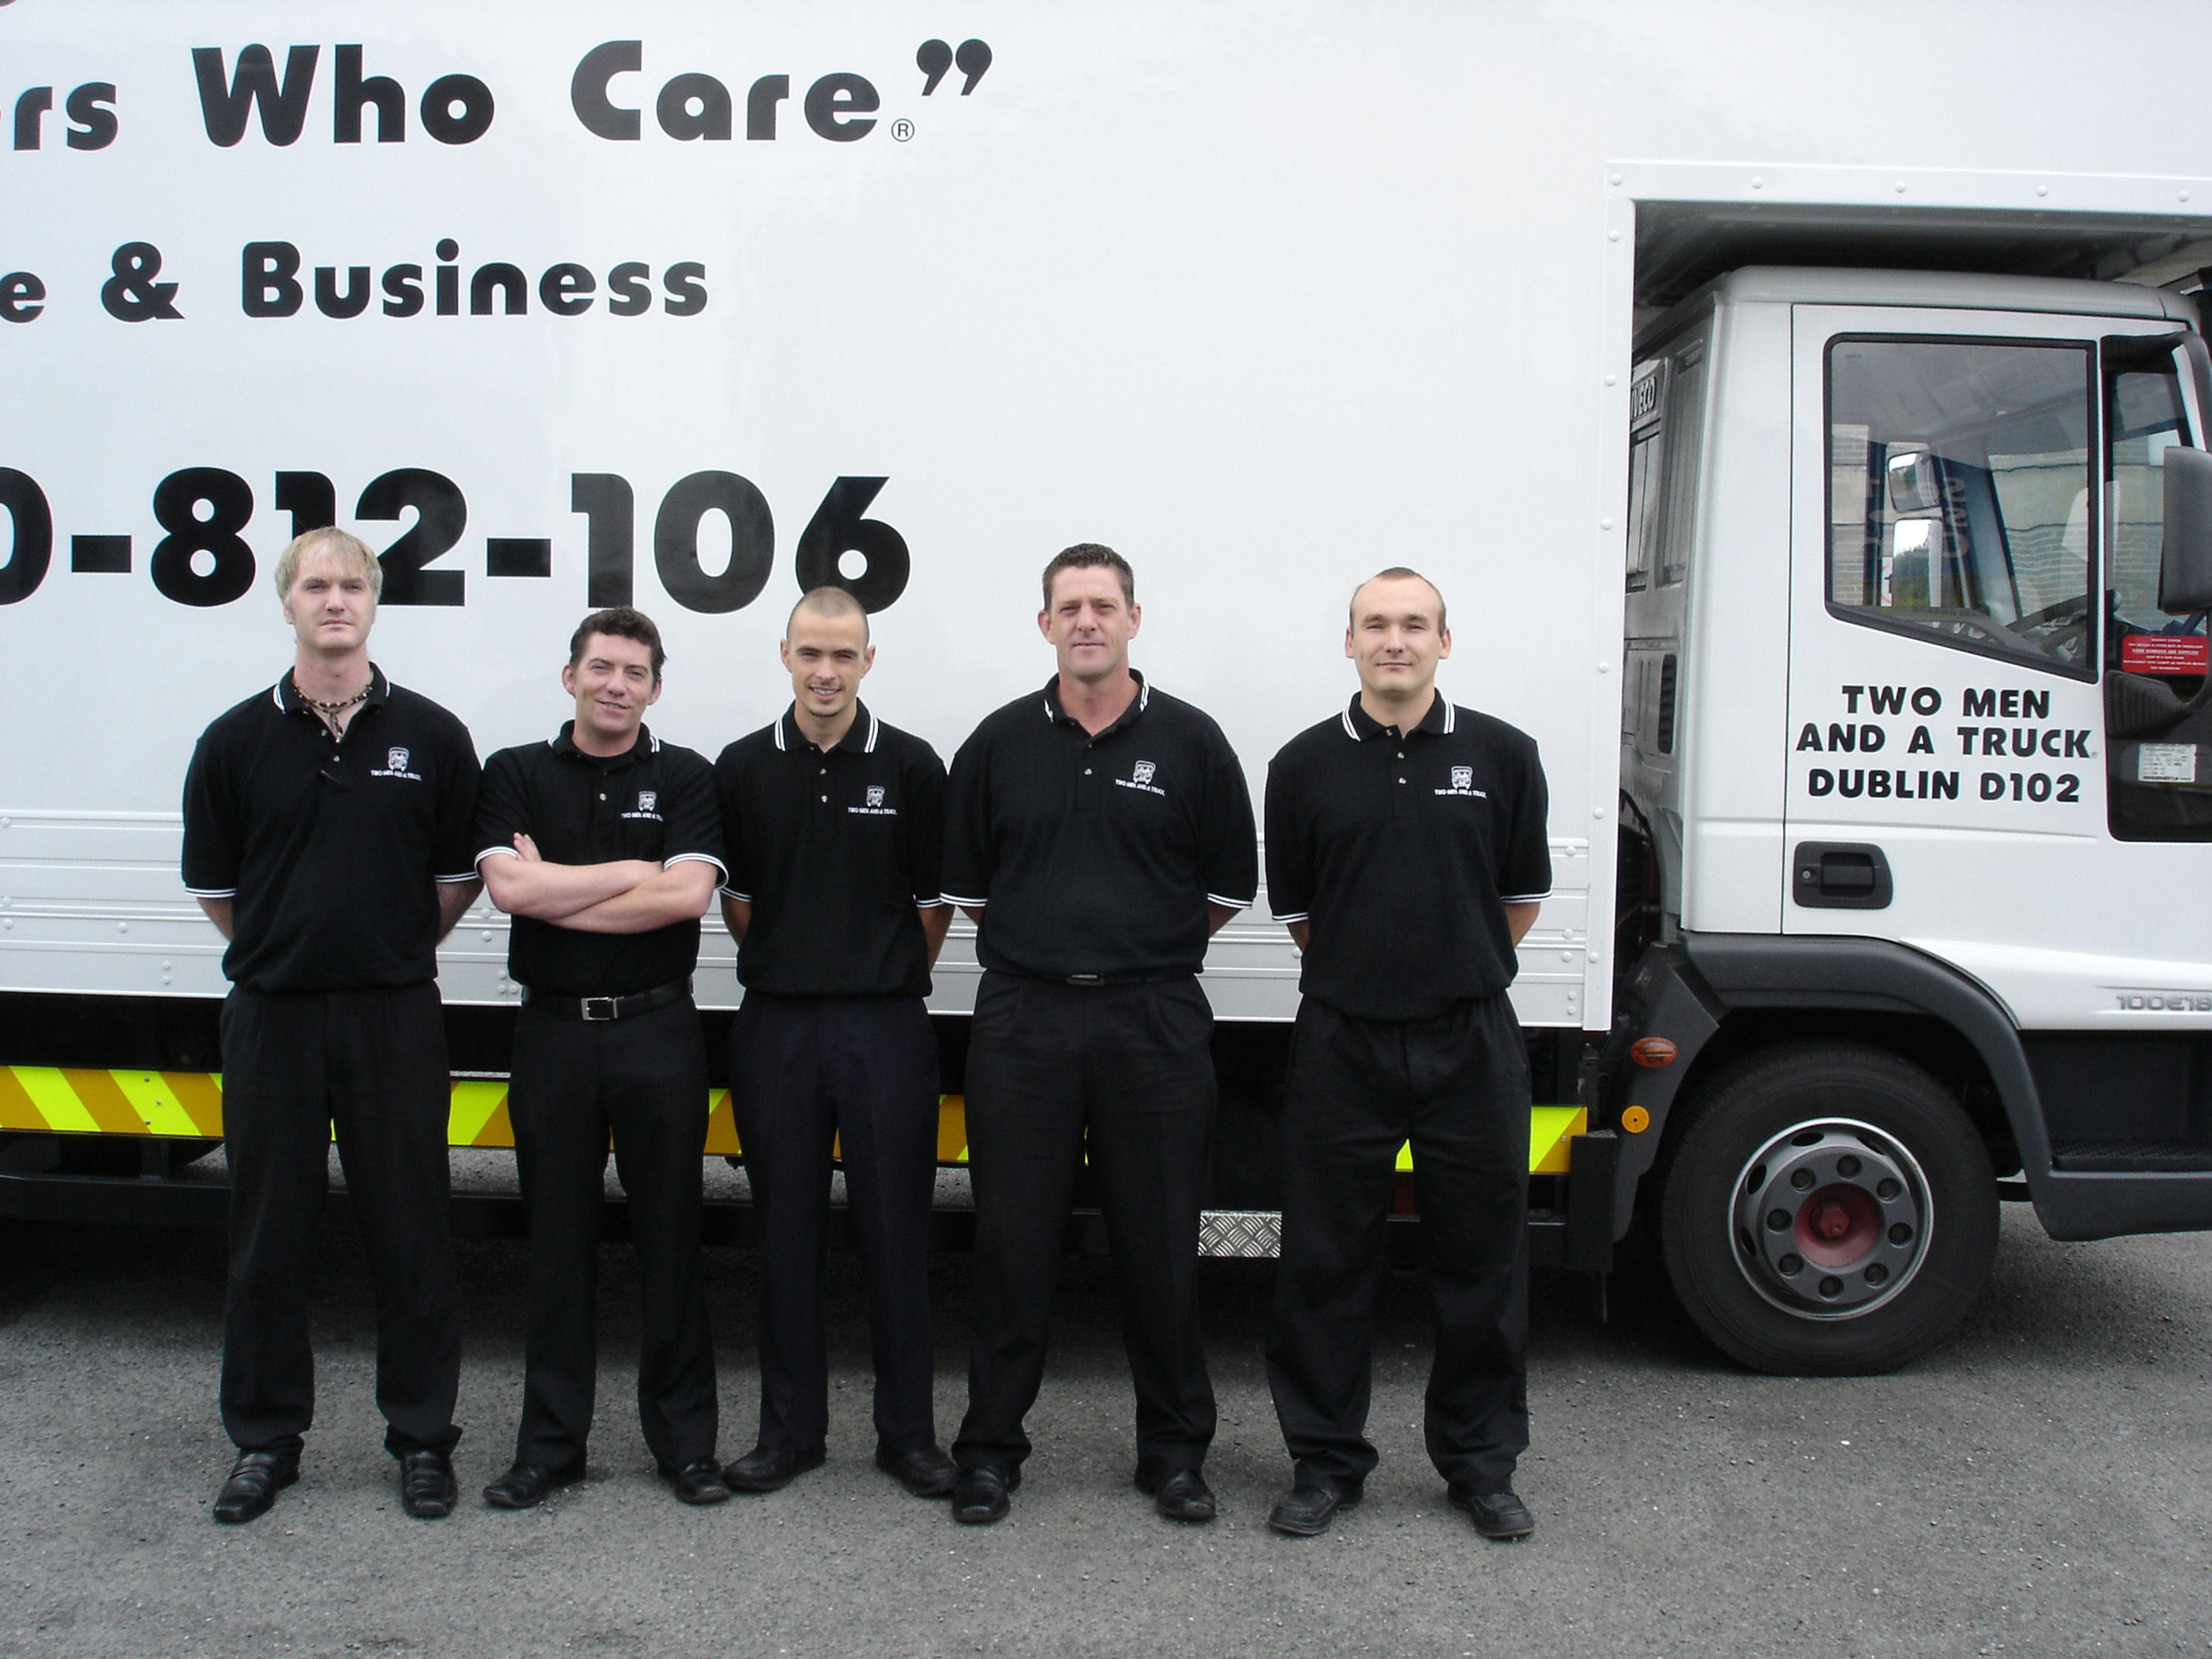 Irish TWO MEN AND A TRUCK team members stand in front of moving truck